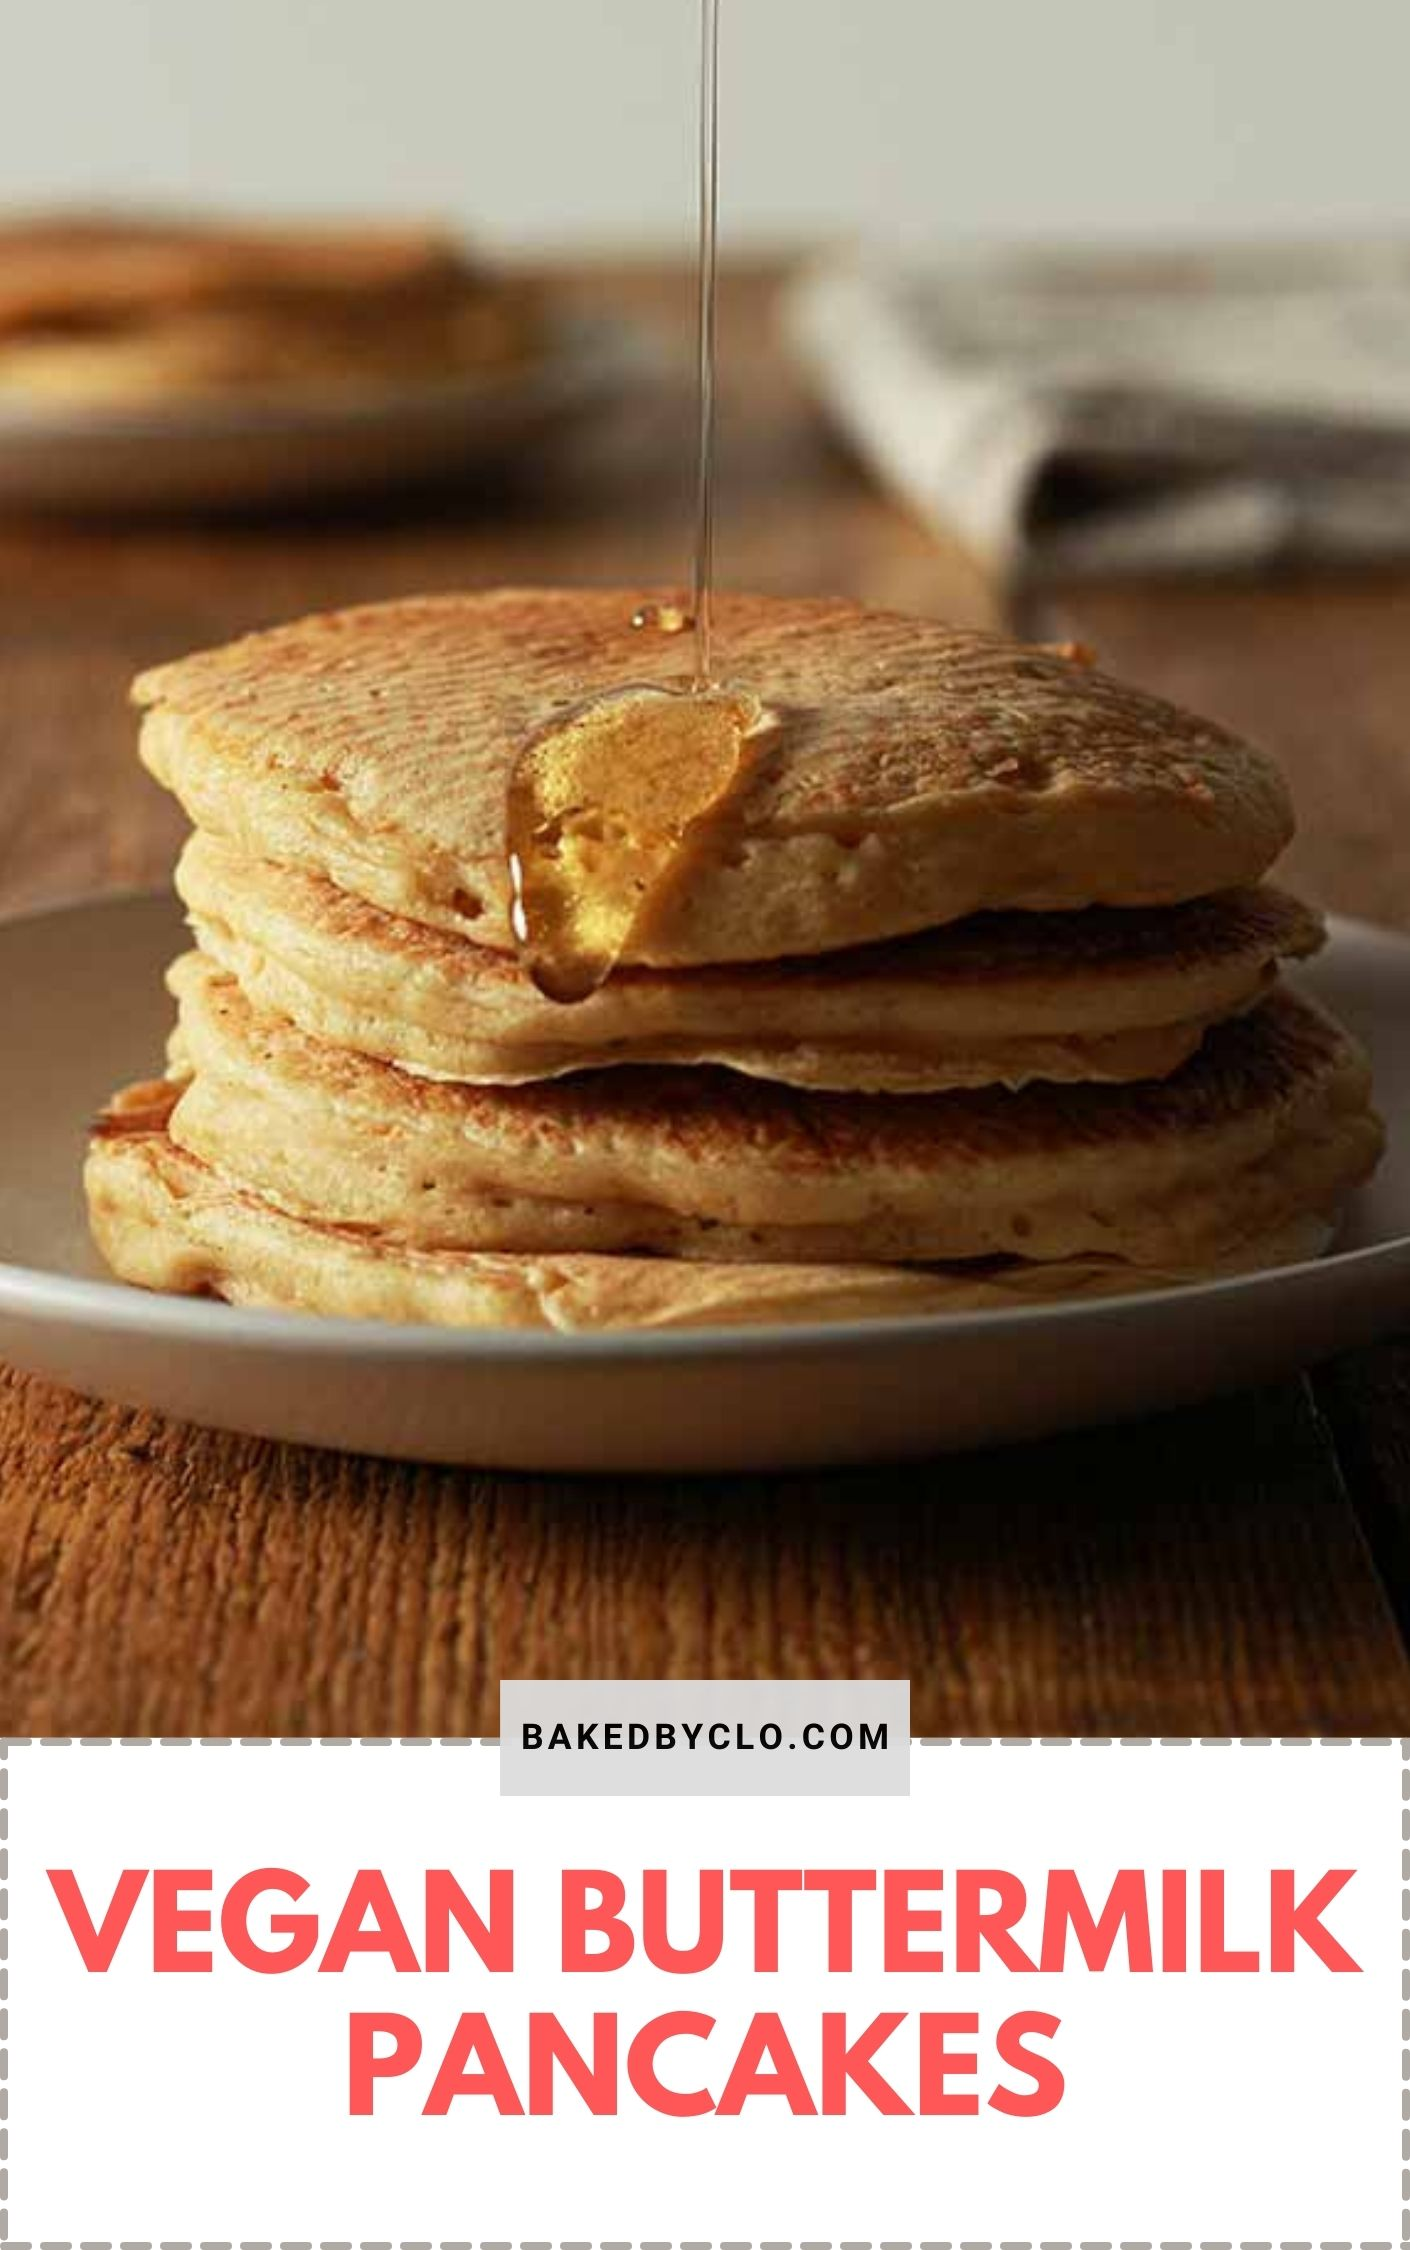 Pinterest pin image of a stack of vegan buttermilk pancakes